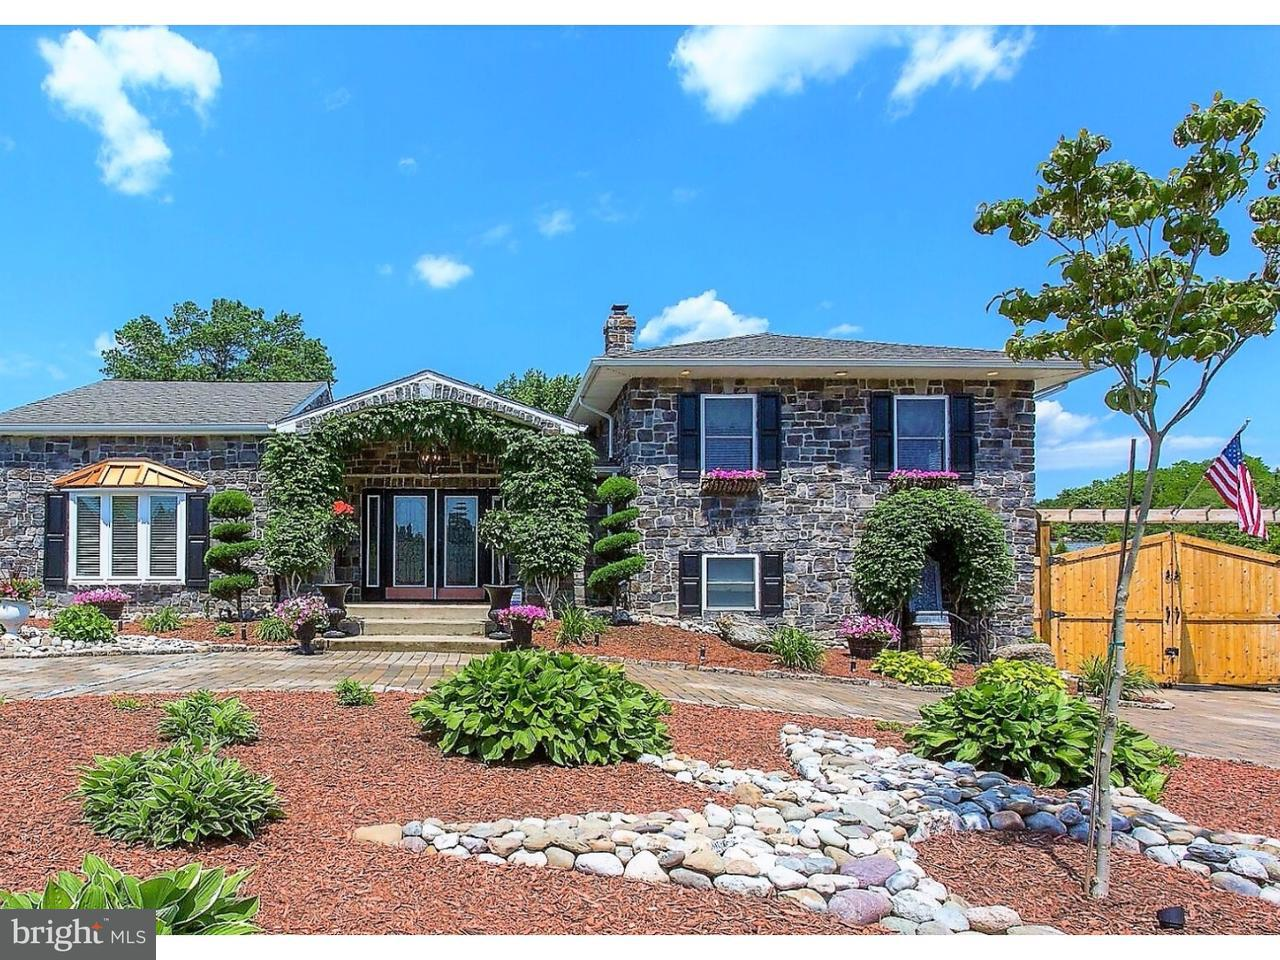 302 S New Ardmore Broomall , PA 19008